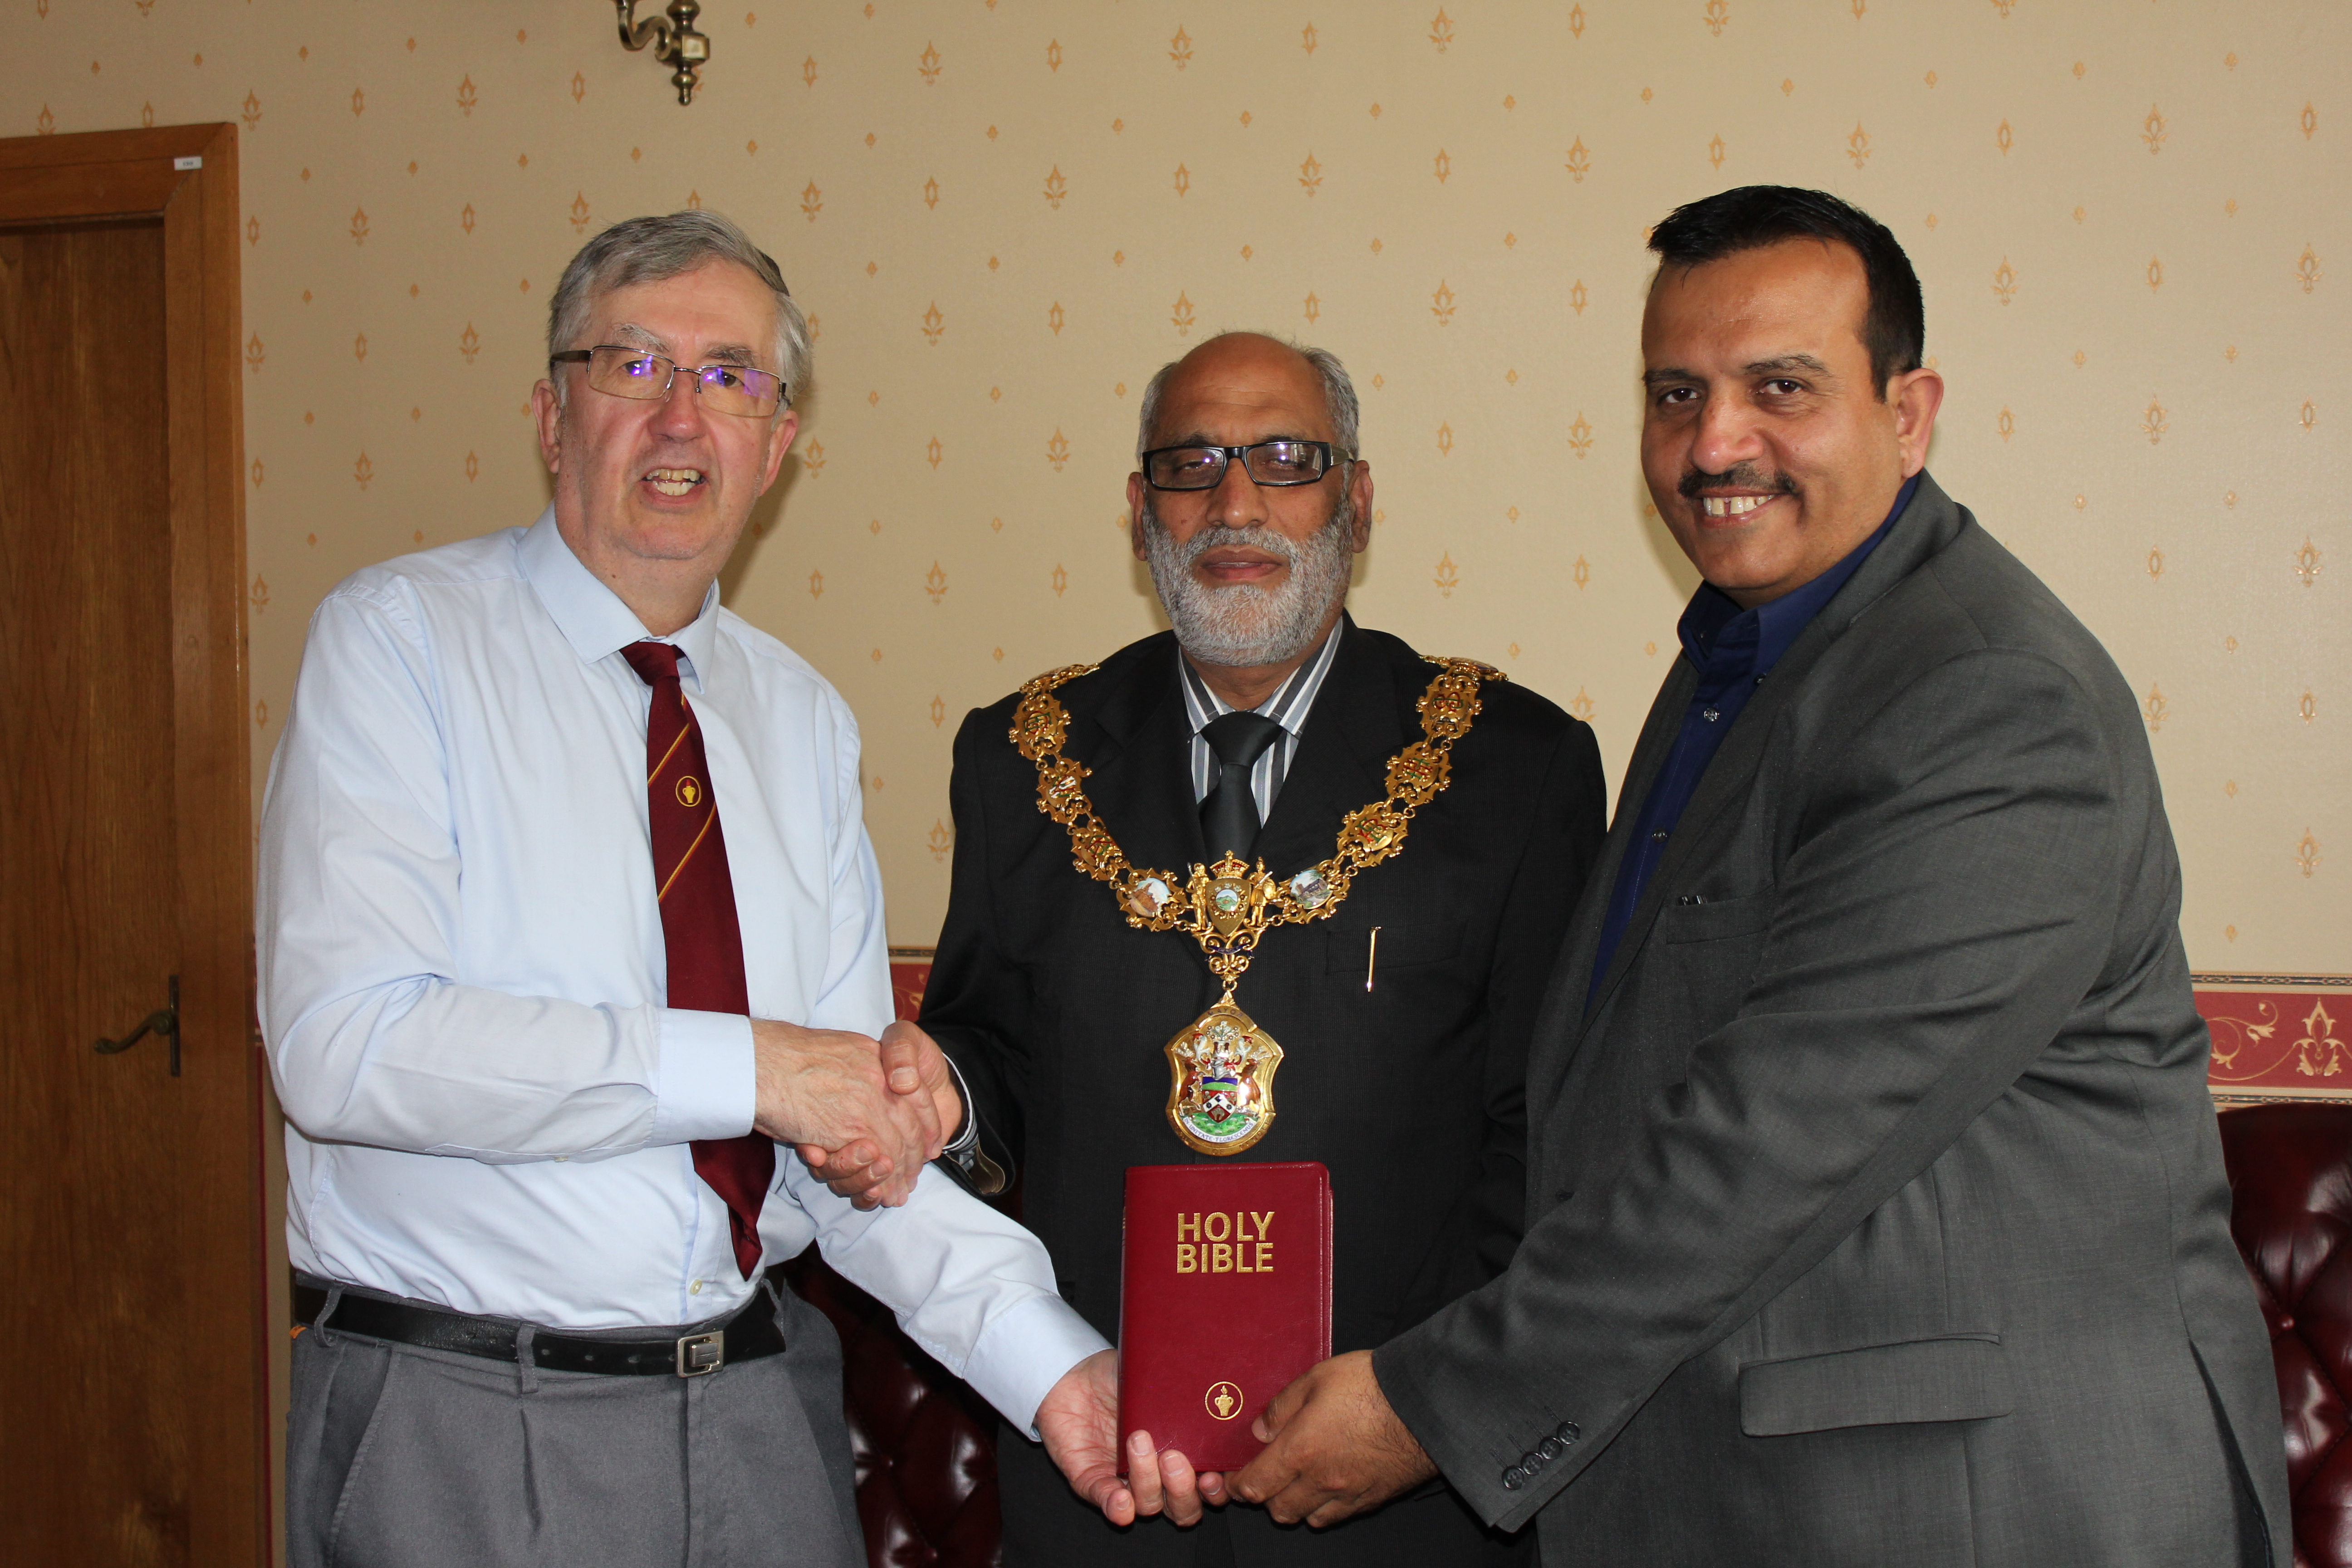 Mayor of Pendle given a Gideon Bible